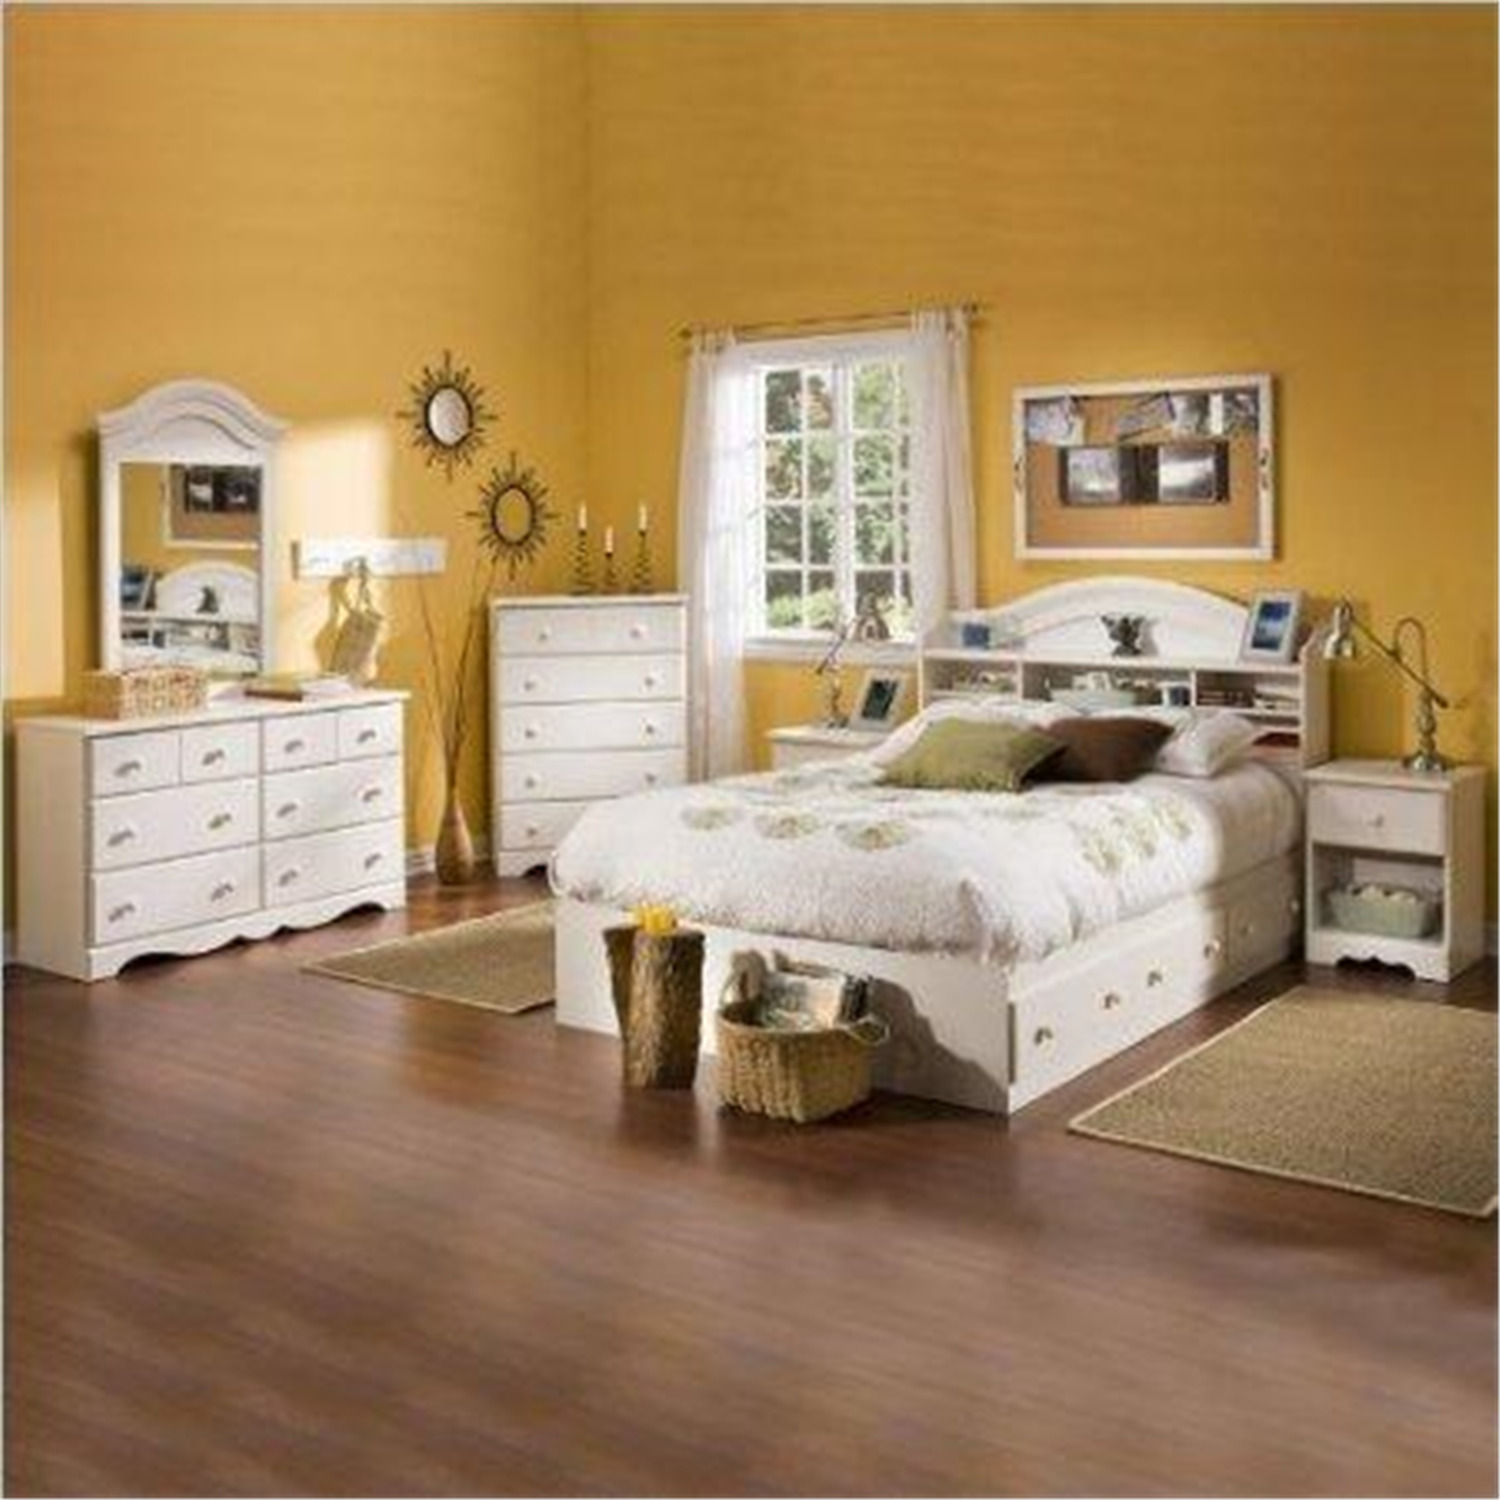 South Shore Kids Full Wood Bookcase Bed 4 Piece Bedroom Set In White Wash By Oj Commerce 3210211